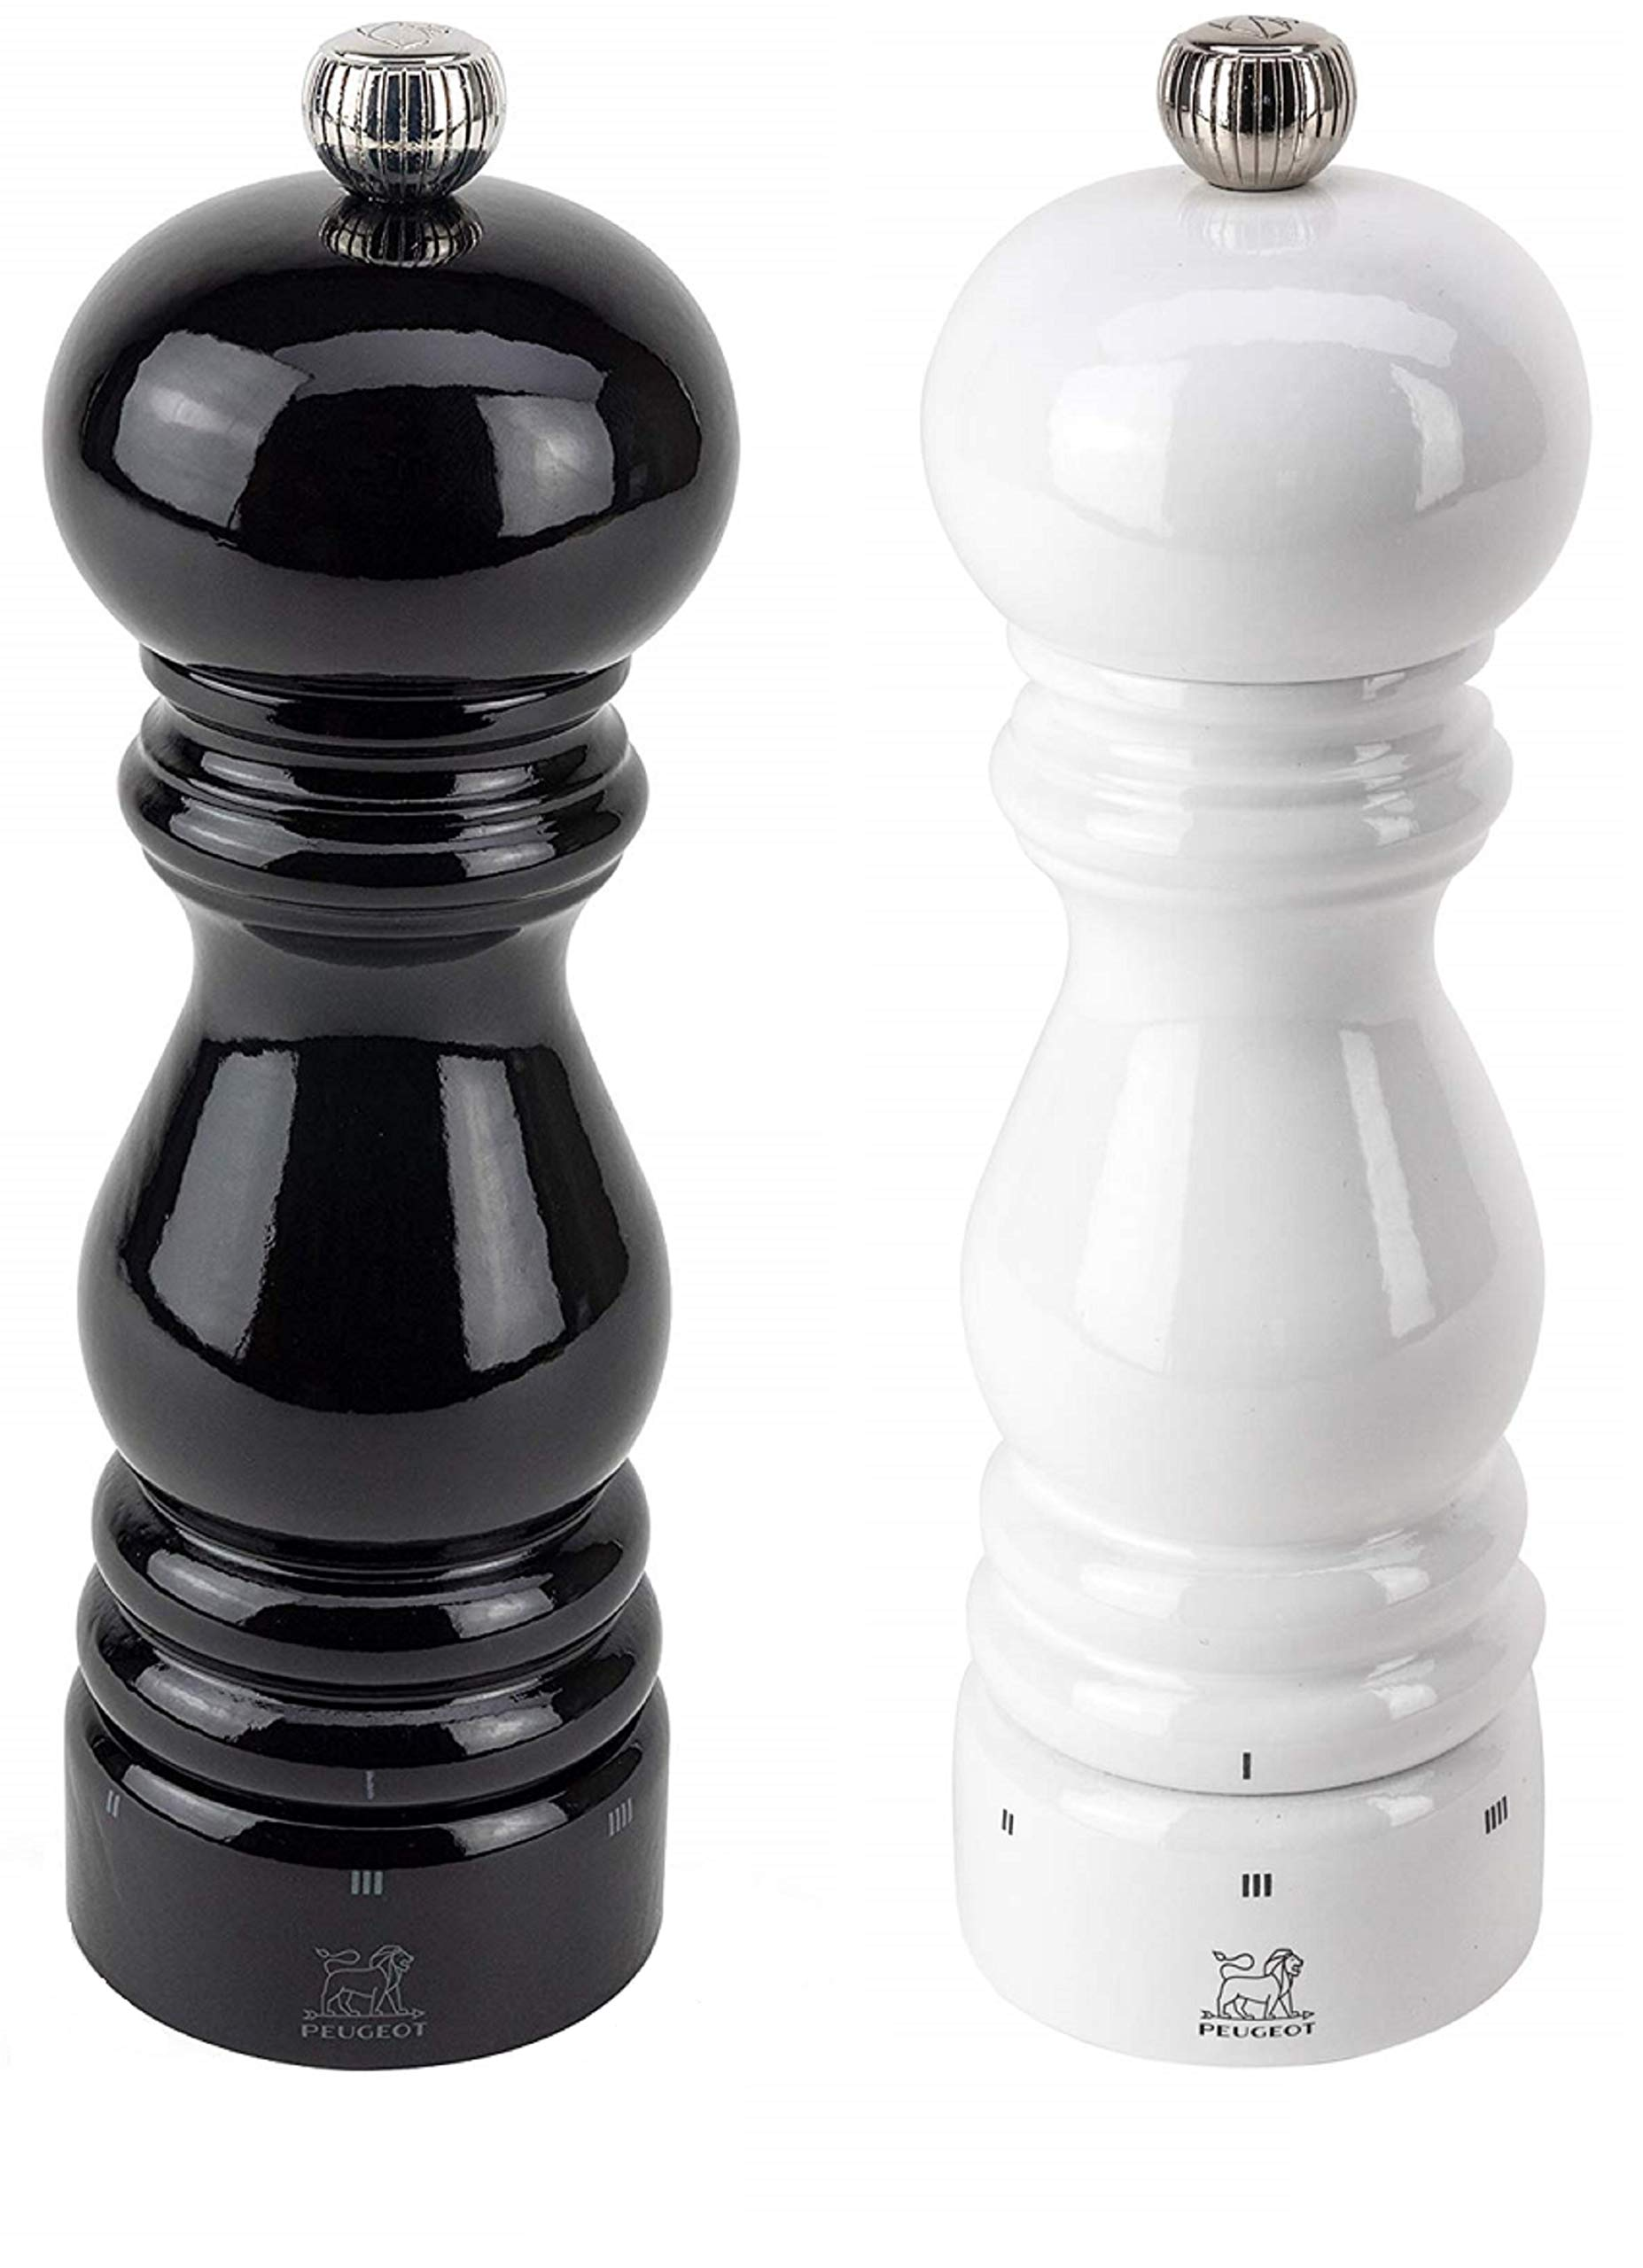 Peugeot Paris U'Select Lacquer Salt And Pepper Mill Set 7'', Black And White by Peugeot